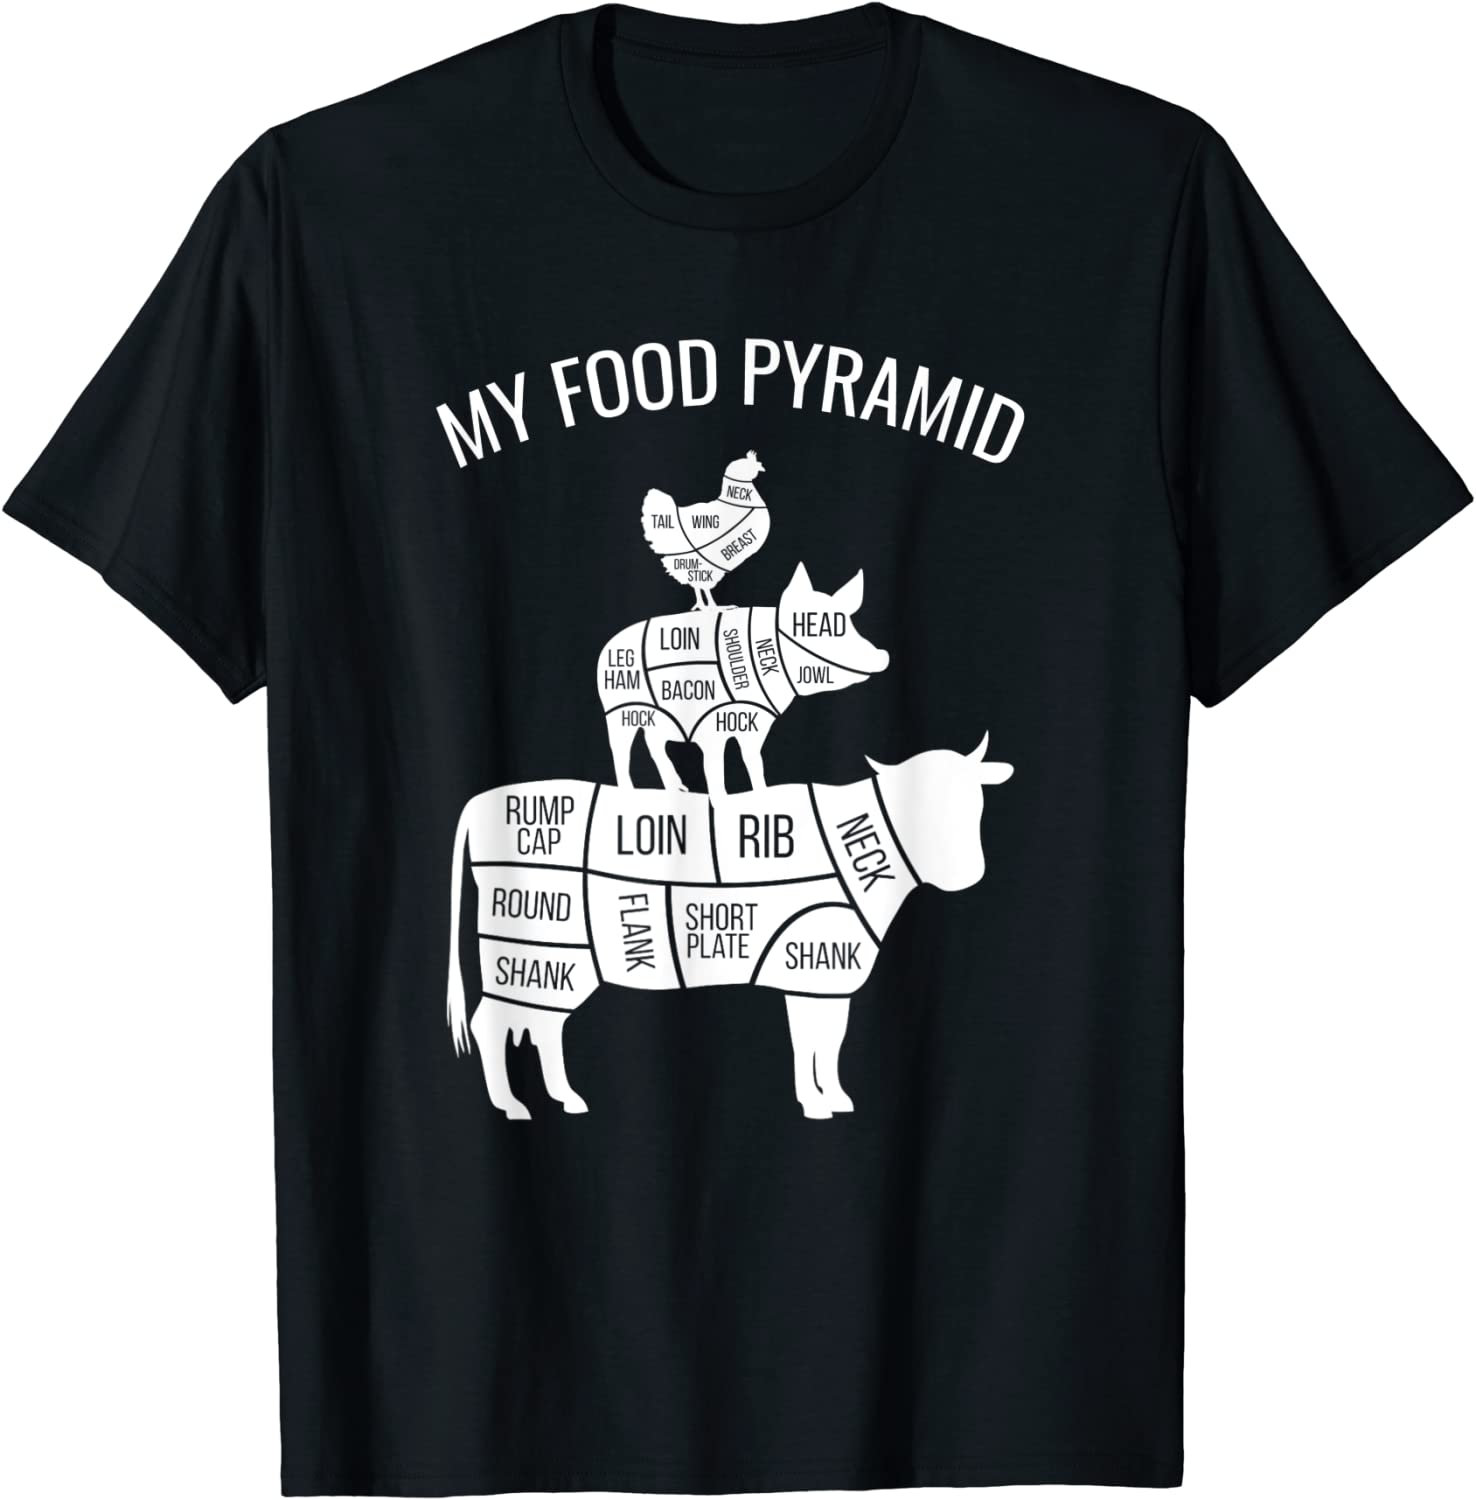 My Food Pyramid Funny Carnivore Cow Pig Chicken T-Shirt